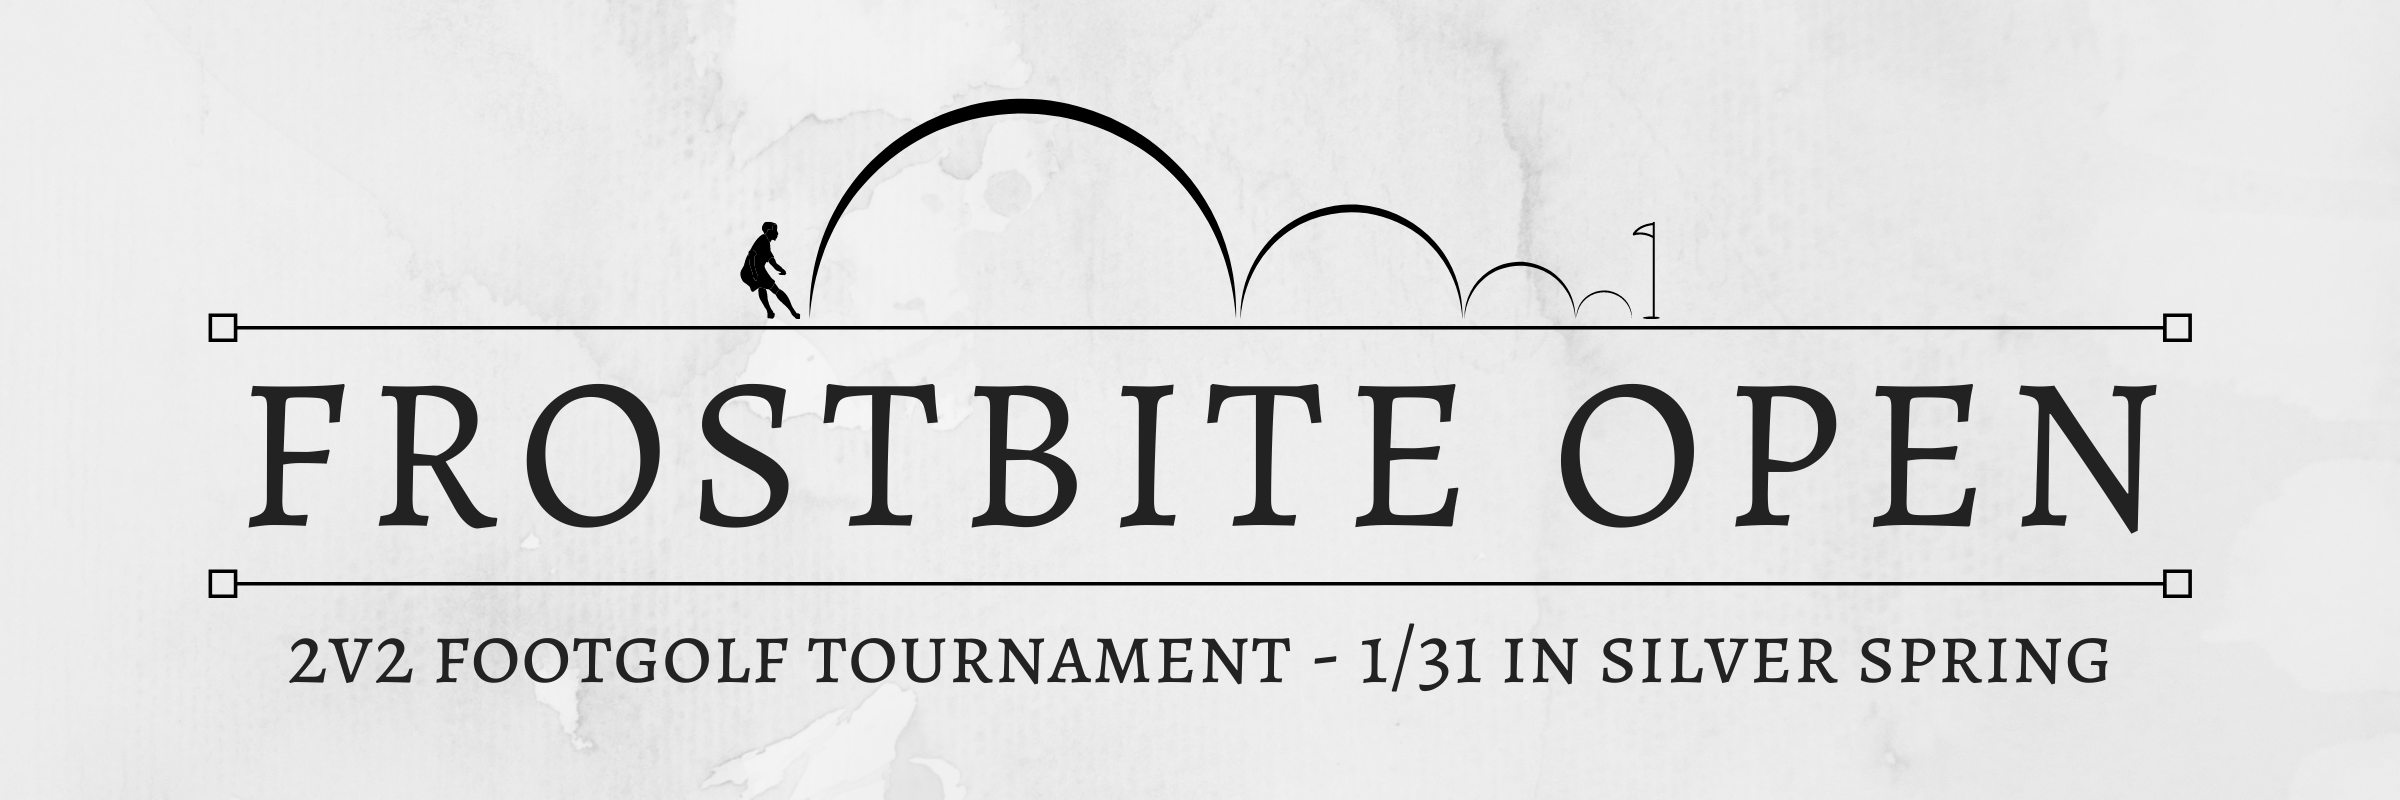 Frostbite Open – 2v2 Footgolf Tournament on 1/31